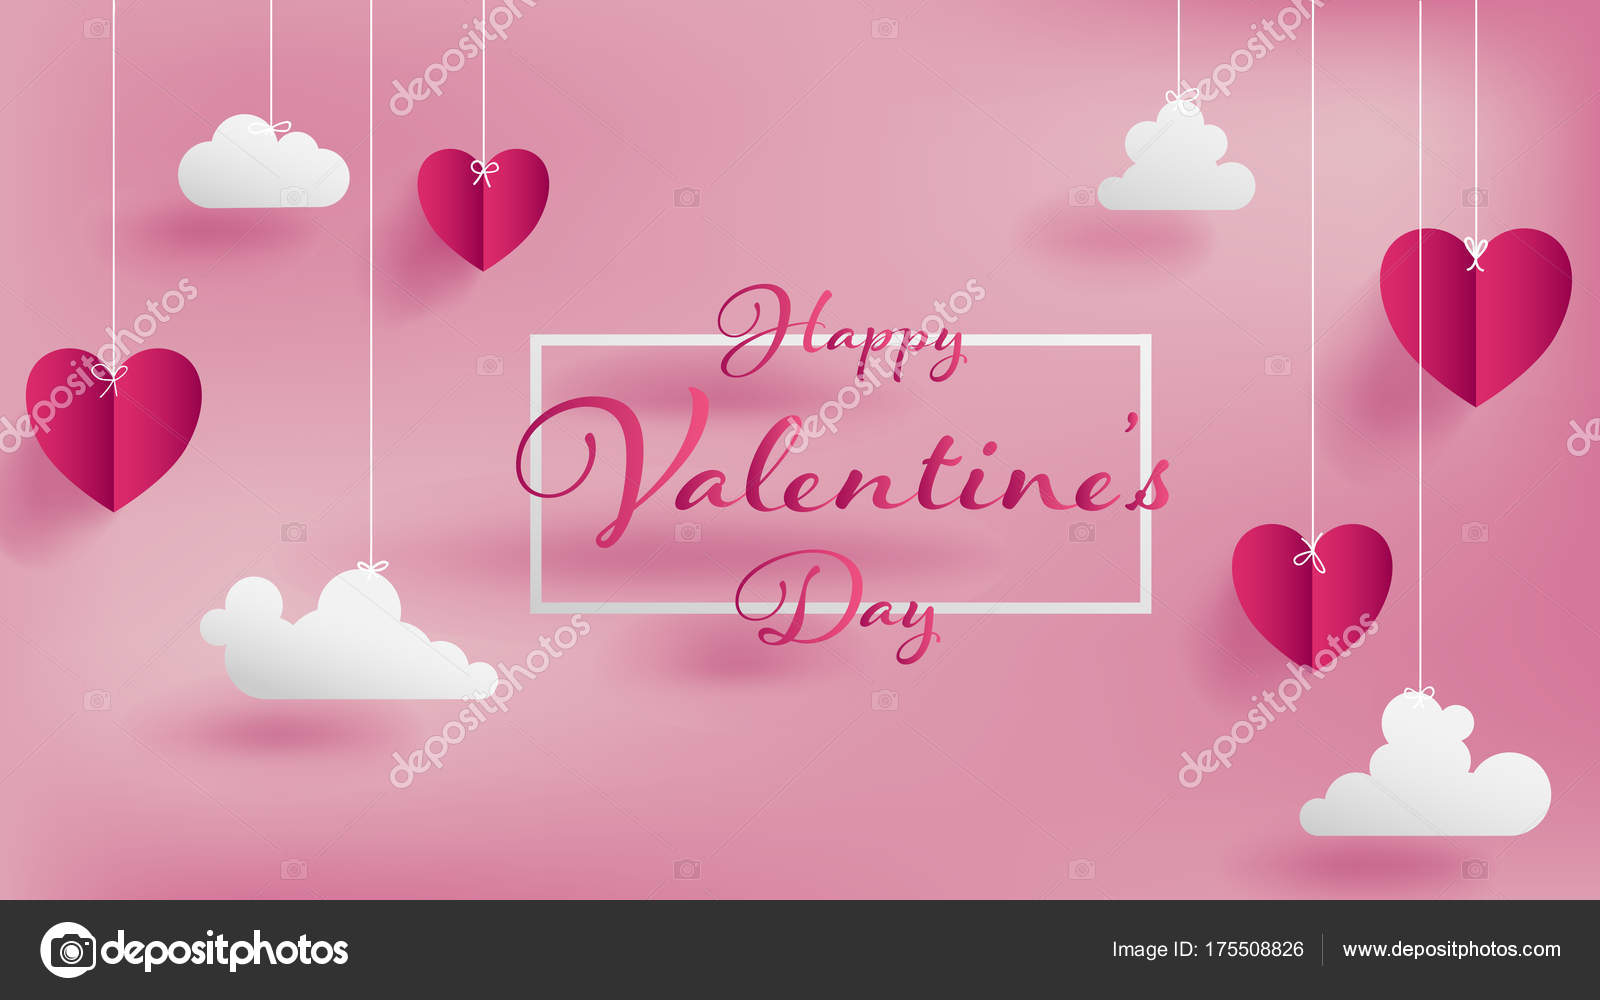 Valentine Day Craft Paper Design Contain Pink Hearts Clouds Holding